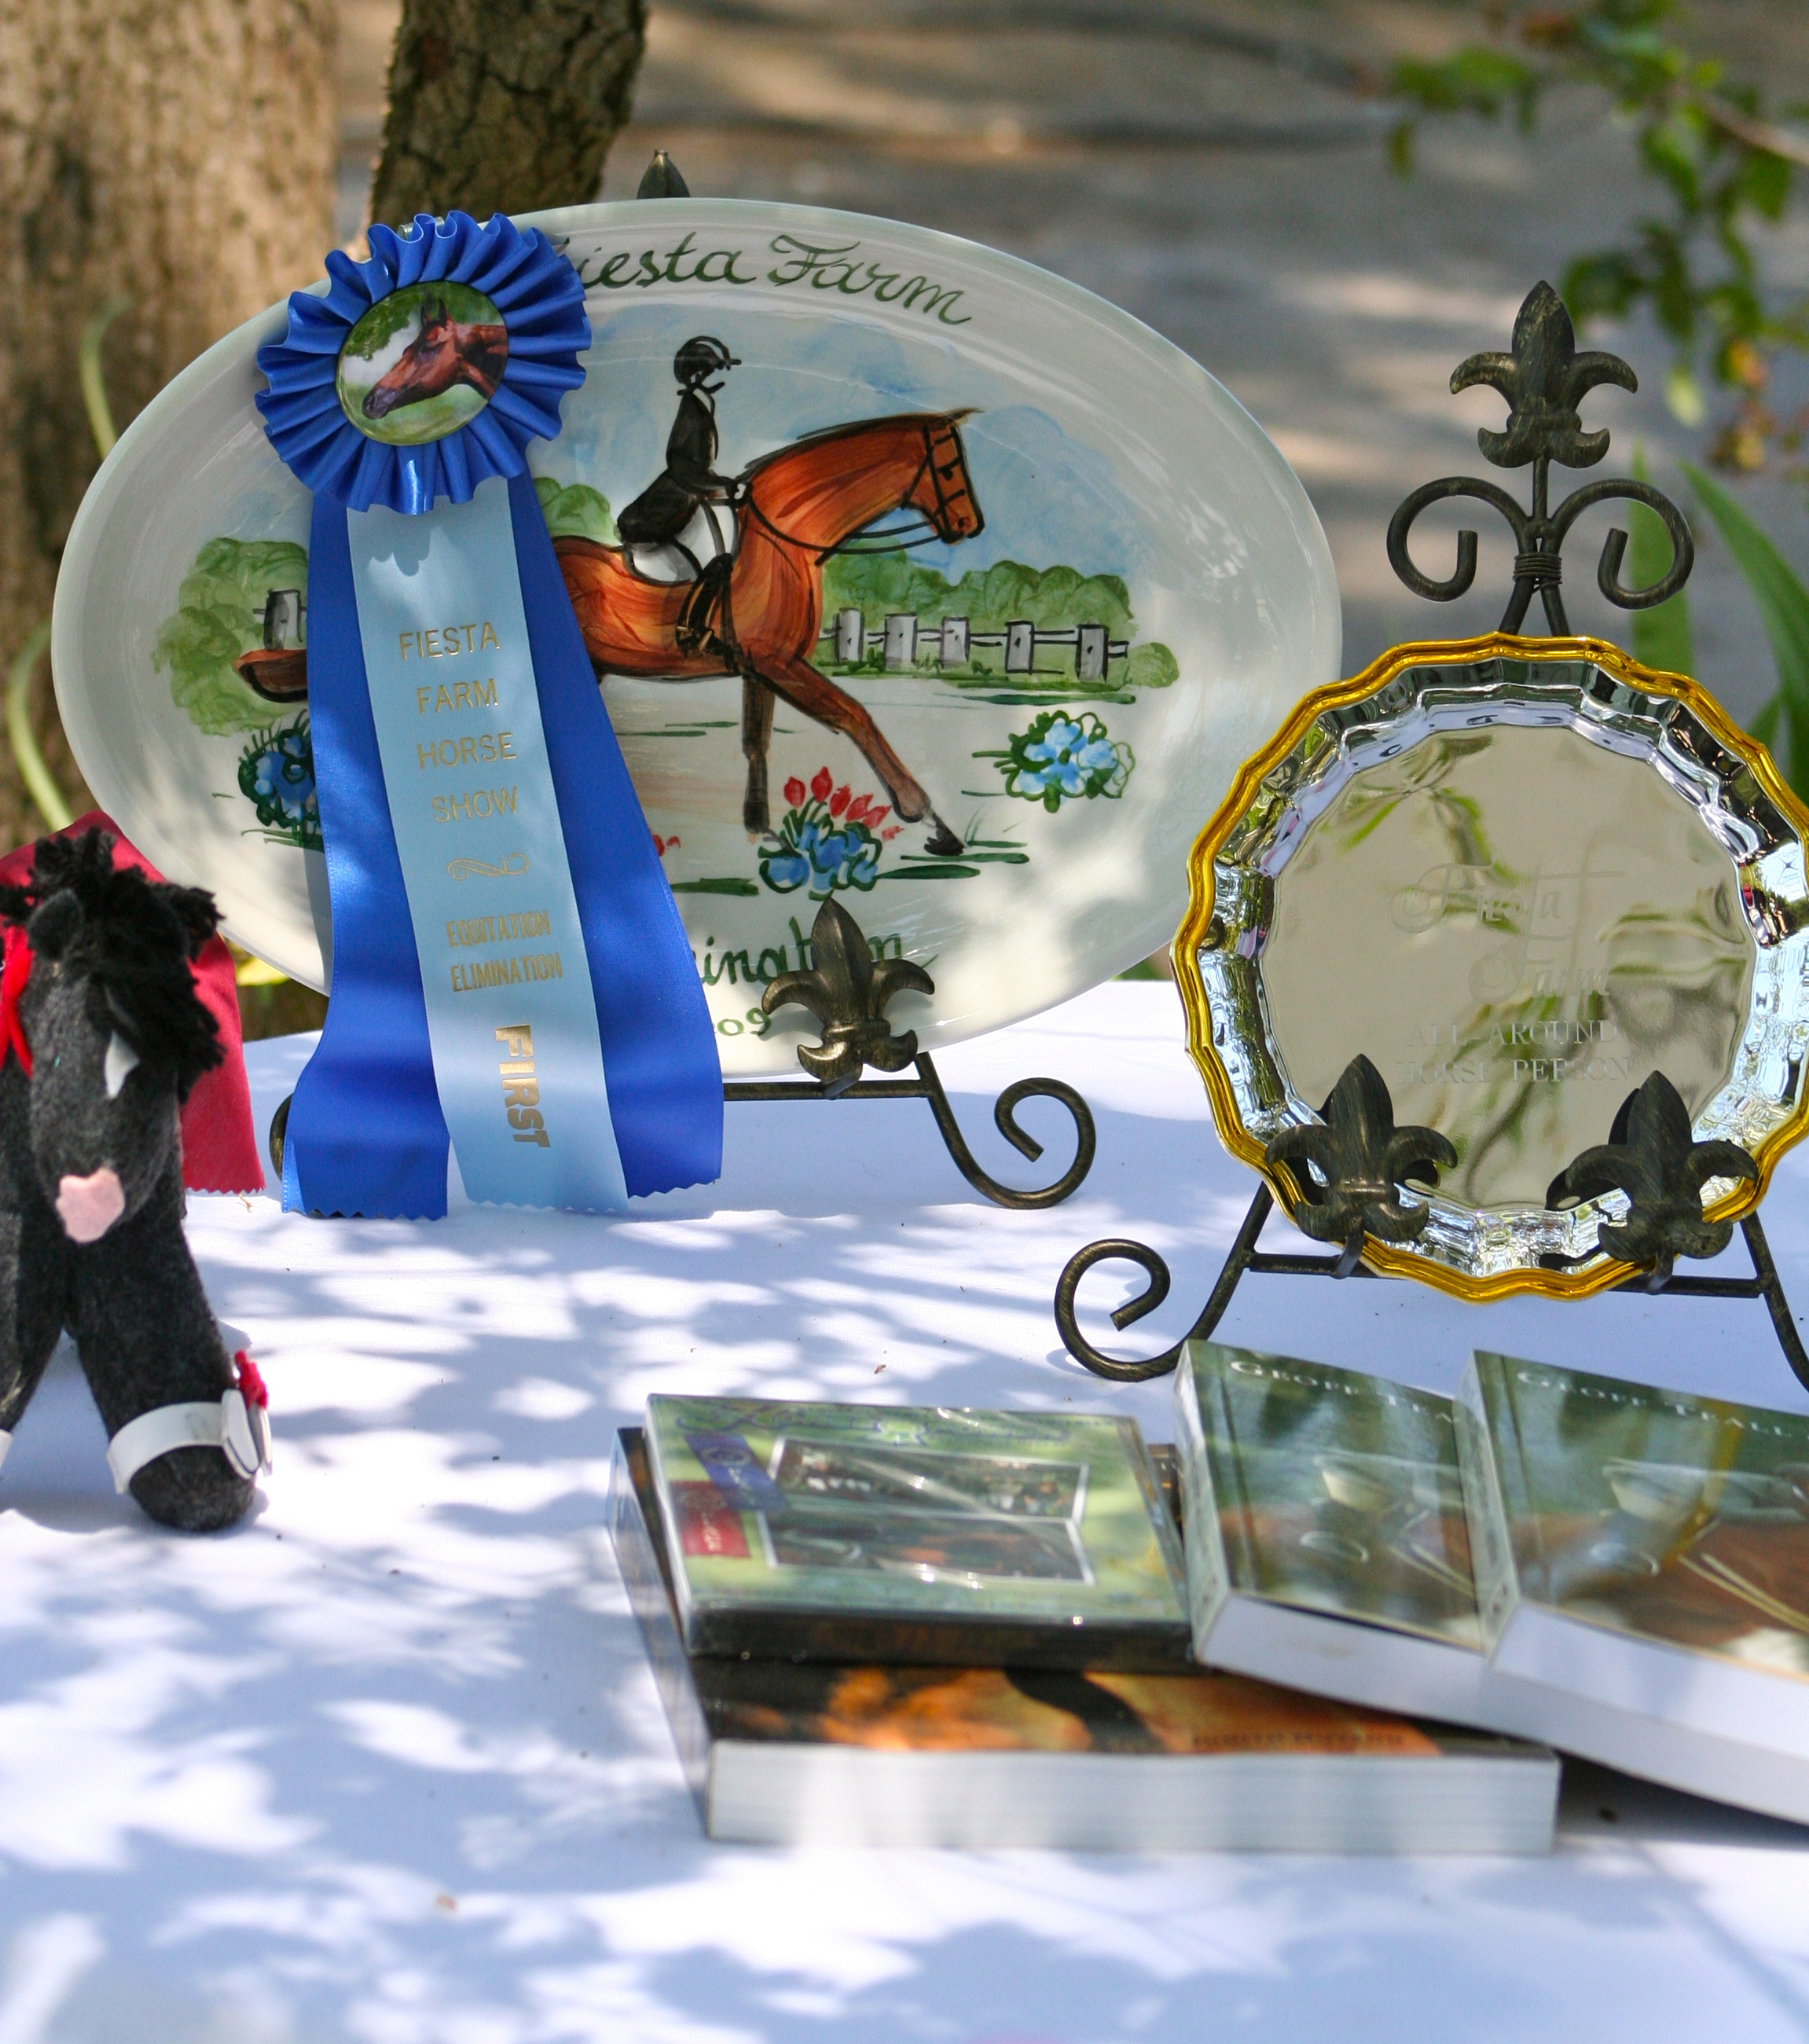 Fiesta Farm awards, September 2010